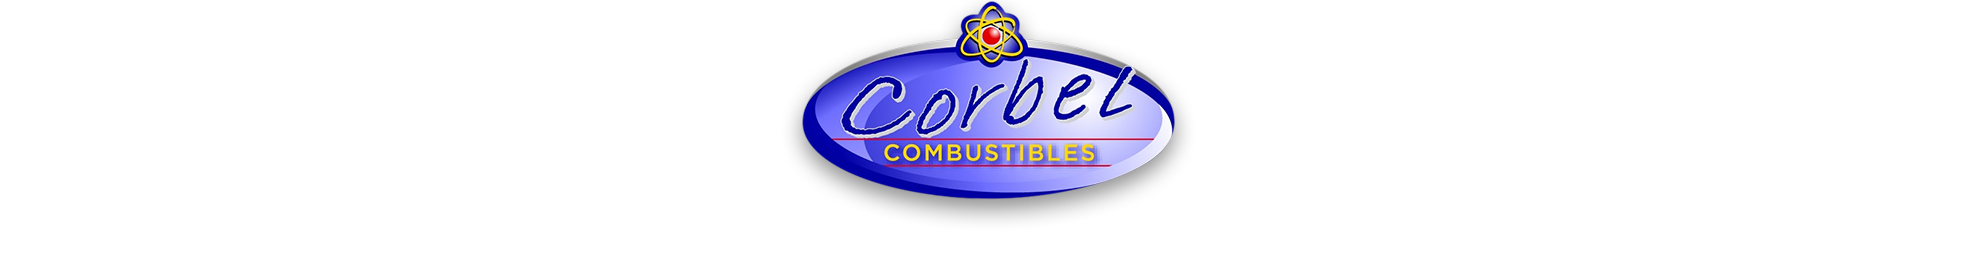 Corbel Combustible